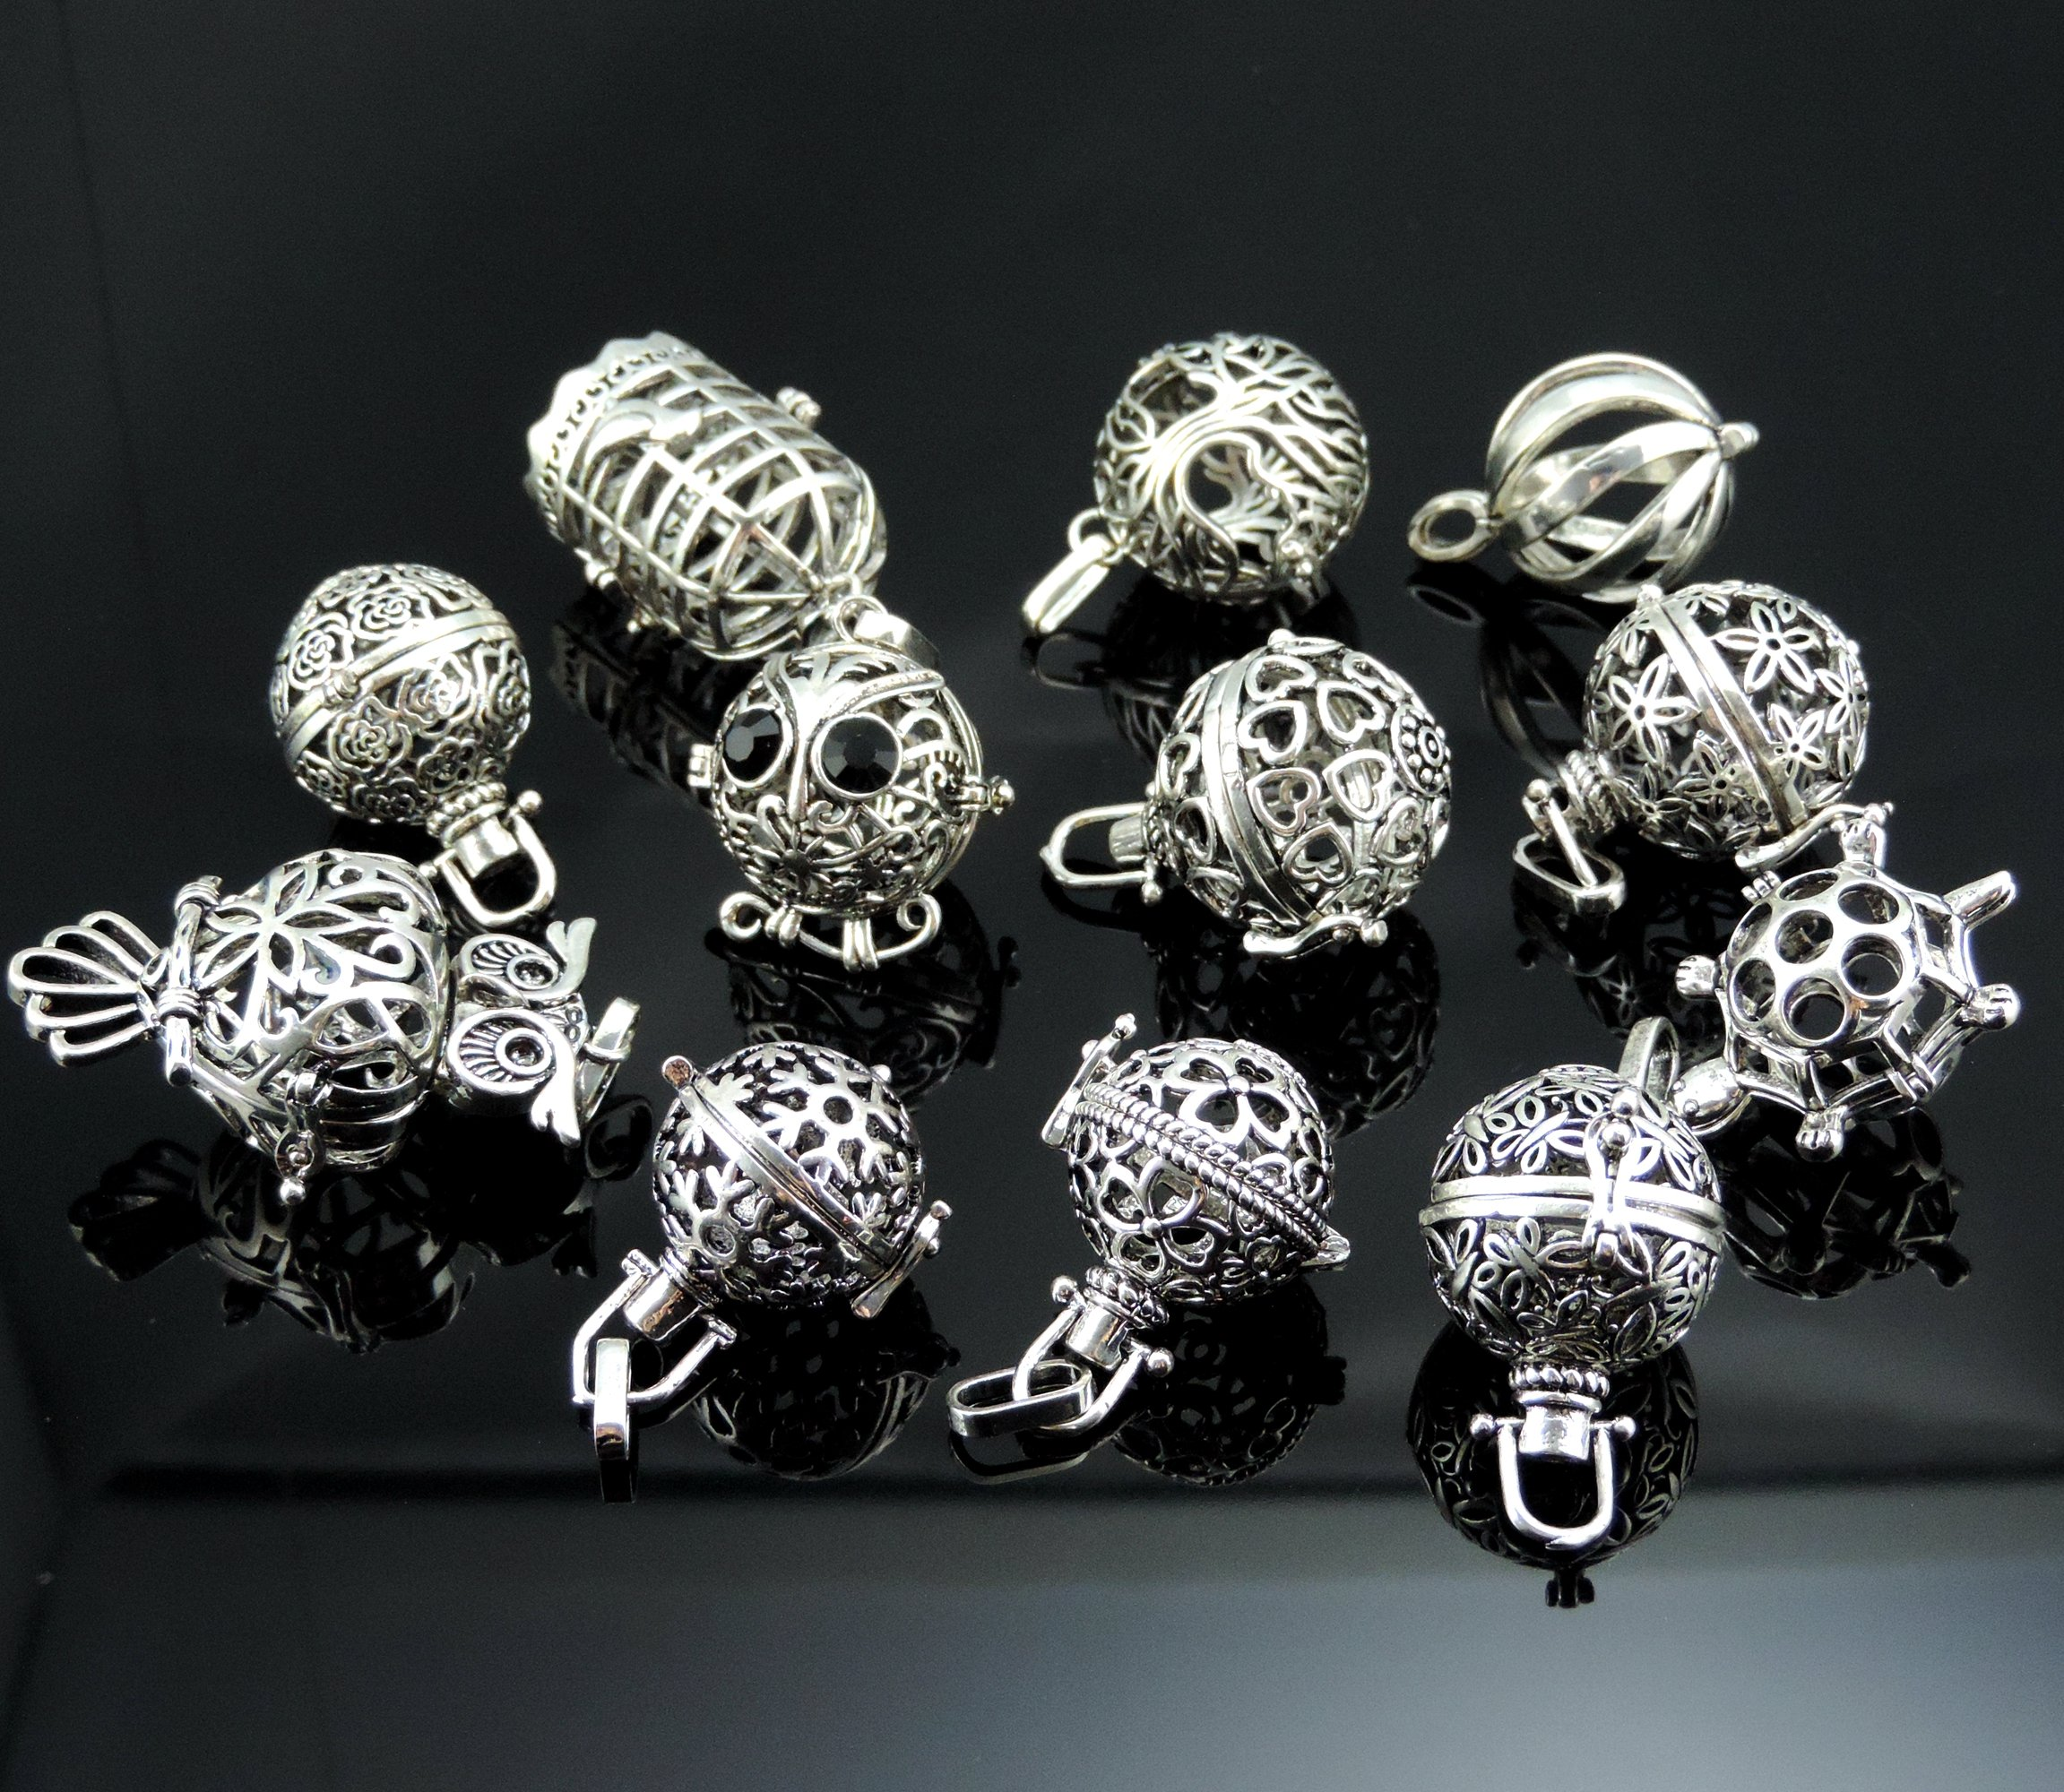 Yaoding 12pcs Mix Hollow Bird Cage Owl Tree Tortoise Ball Locket Lava Stone Perfume Fragrance Essential Oil Aromatherapy Diffuser Pendant Necklace by Yaoding (Image #4)